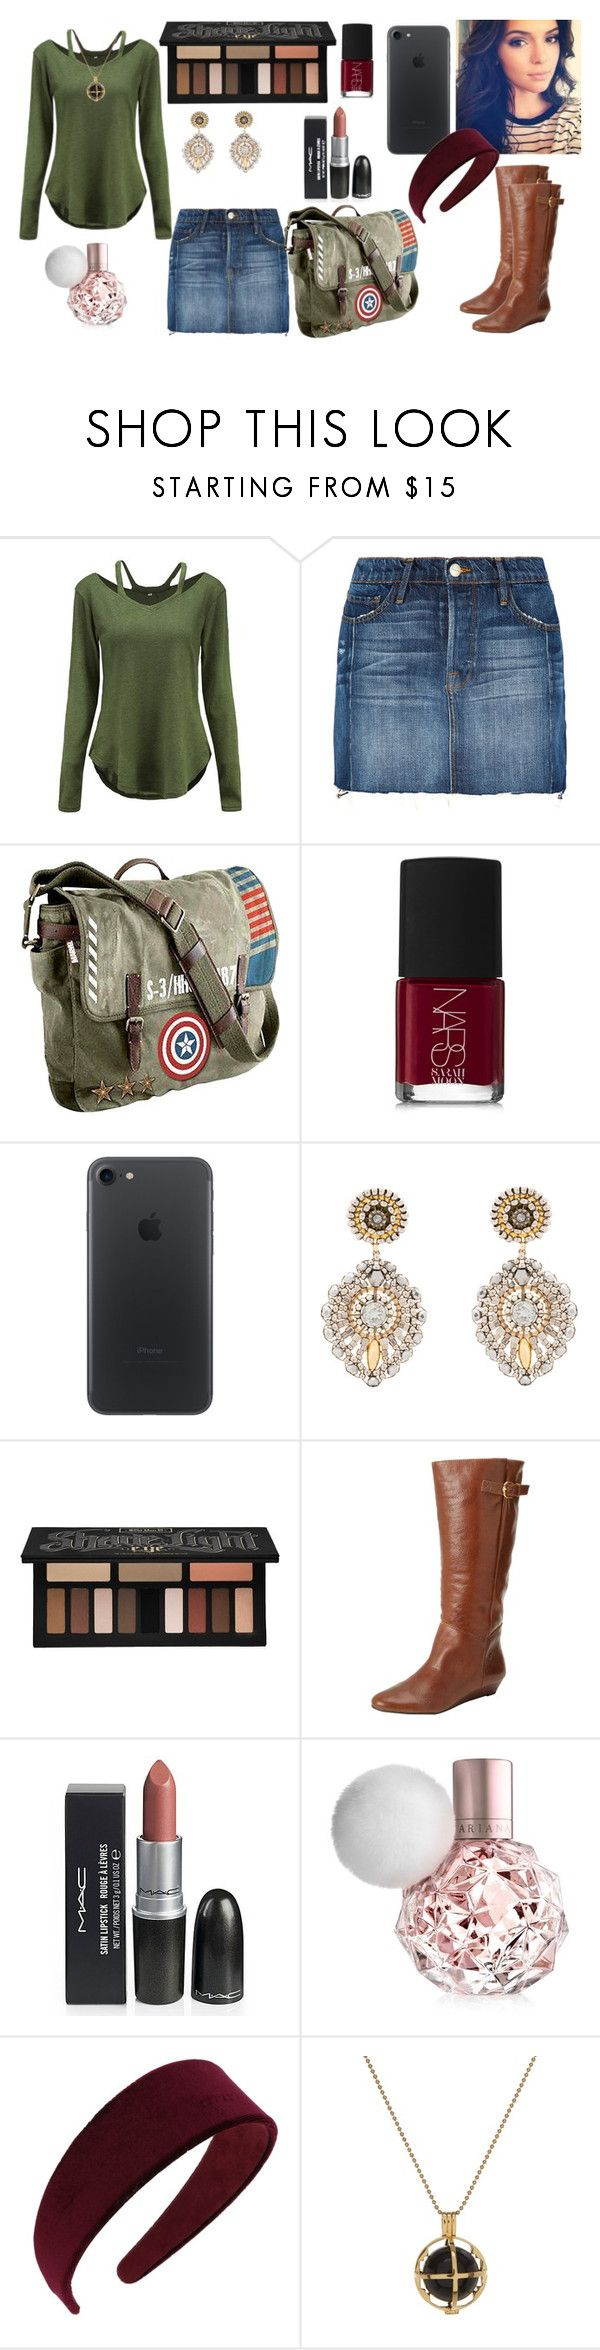 """""""Date Night #14"""" by emmie17dd ❤ liked on Polyvore featuring Frame, Marvel, NARS Cosmetics, Miguel Ases, Kat Von D, Steve Madden, Miss Selfridge and Kiki Minchin"""